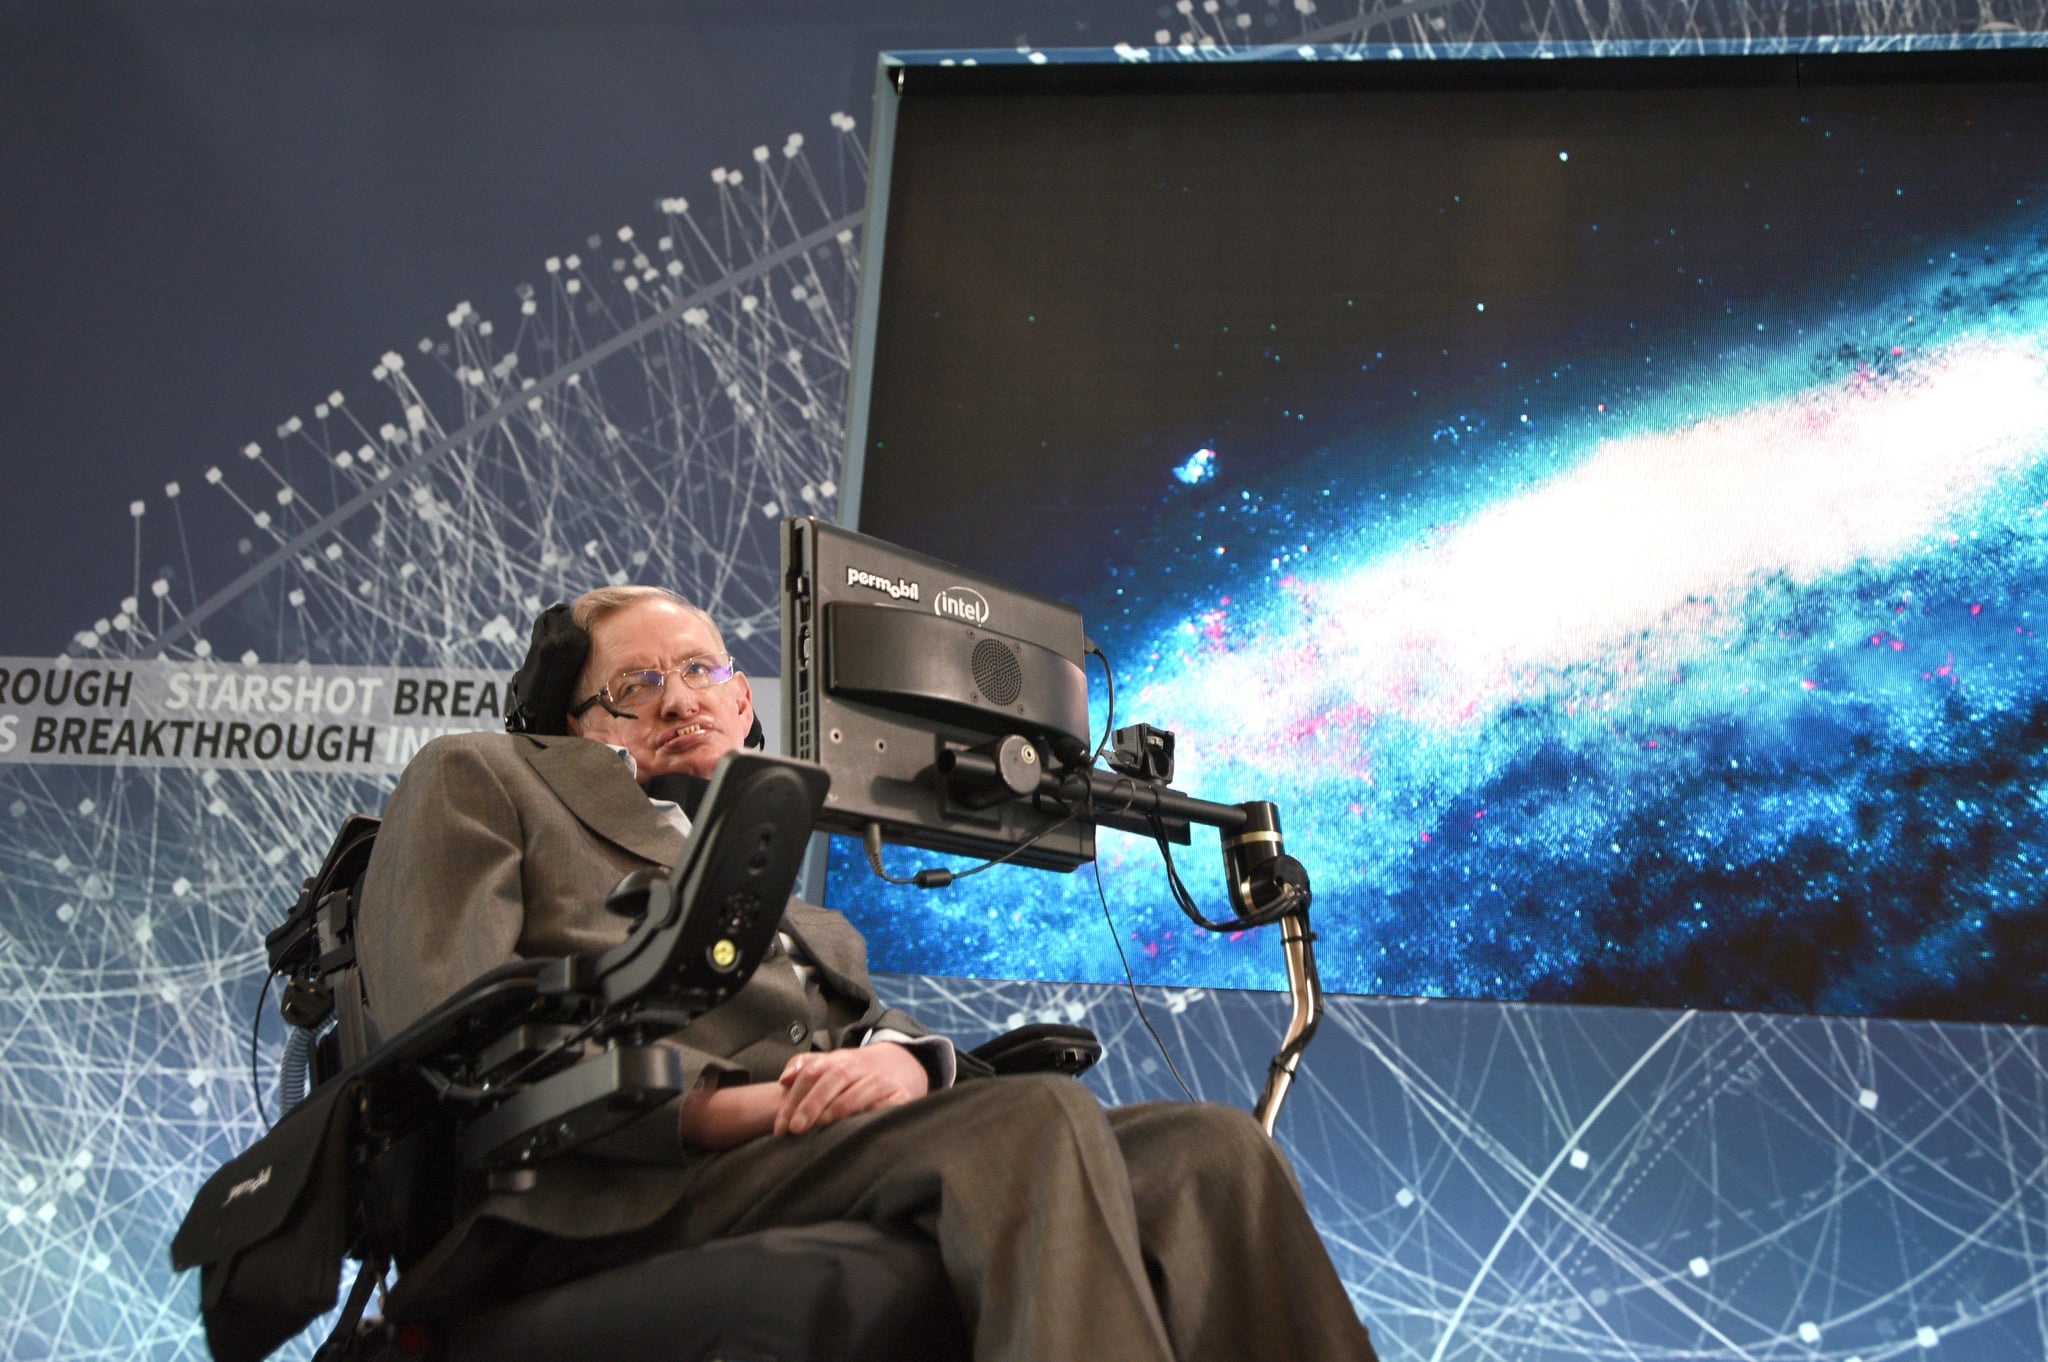 NEW YORK, NEW YORK - APRIL 12:  Stephen Hawking, CH, CBE, FRS, Dennis Stanton Avery and Sally Tsui Wong-Avery Director of Research, University of Cambridge as he and Yuri Milner host press conference to announce Breakthrough Starshot, a new space exploration initiative, at One World Observatory on April 12, 2016 in New York City.  (Photo by Bryan Bedder/Getty Images for Breakthrough Prize Foundation)